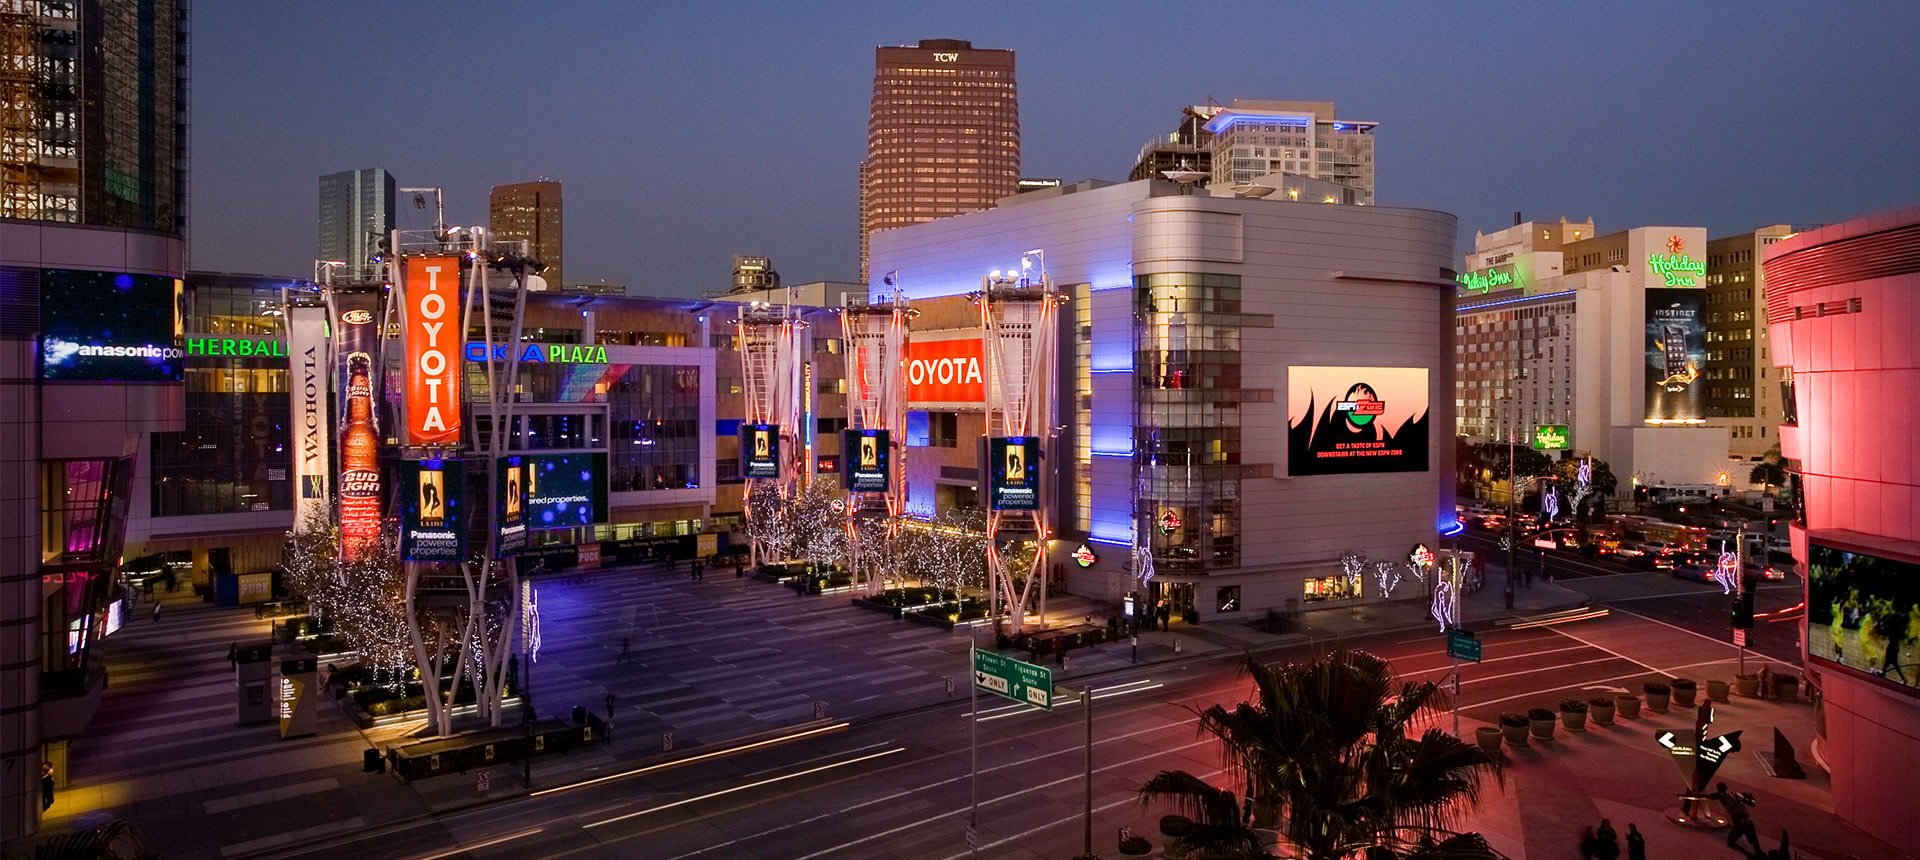 Downtown l a gets major tourism and revenue boost by implementing